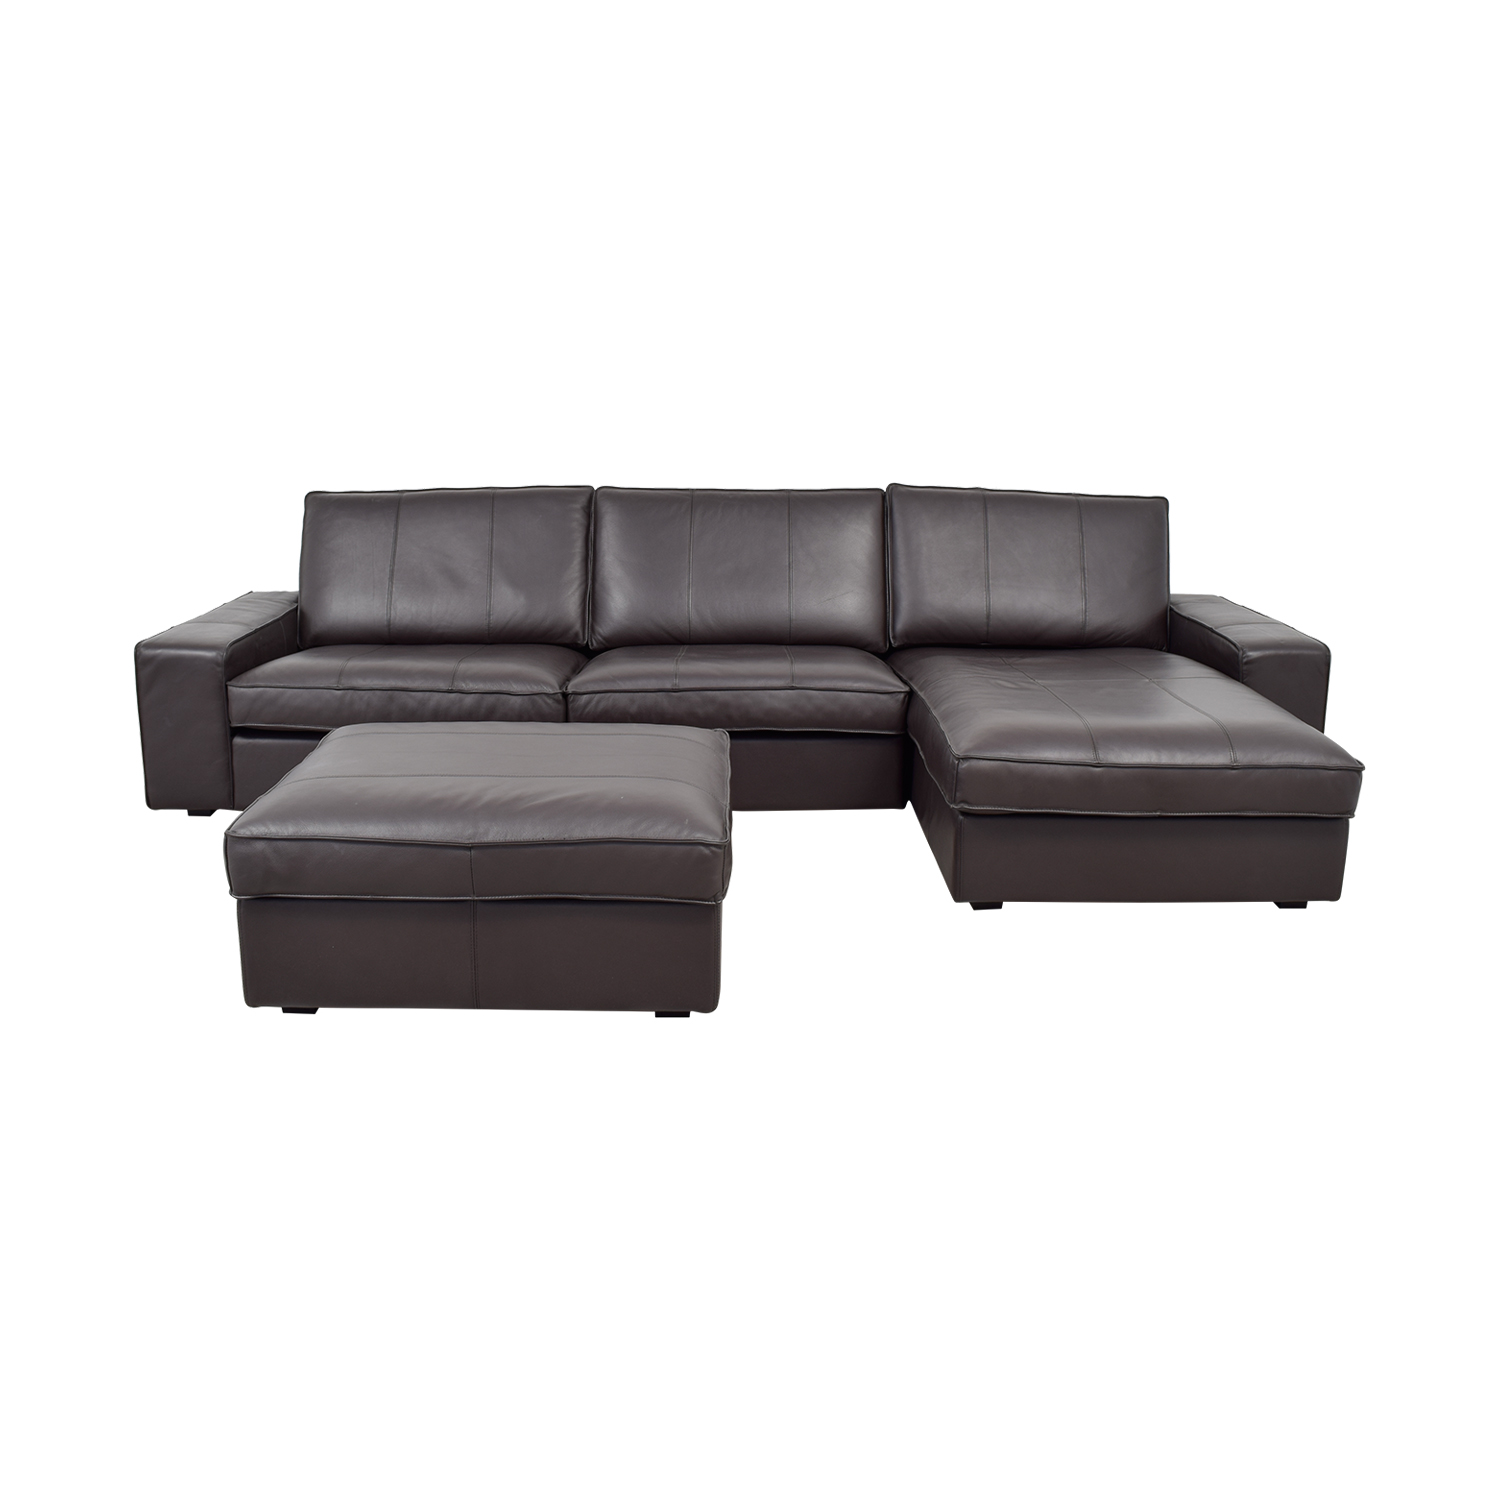 IKEA IKEA Kivik Chaise Sectional with Ottoman dimensions